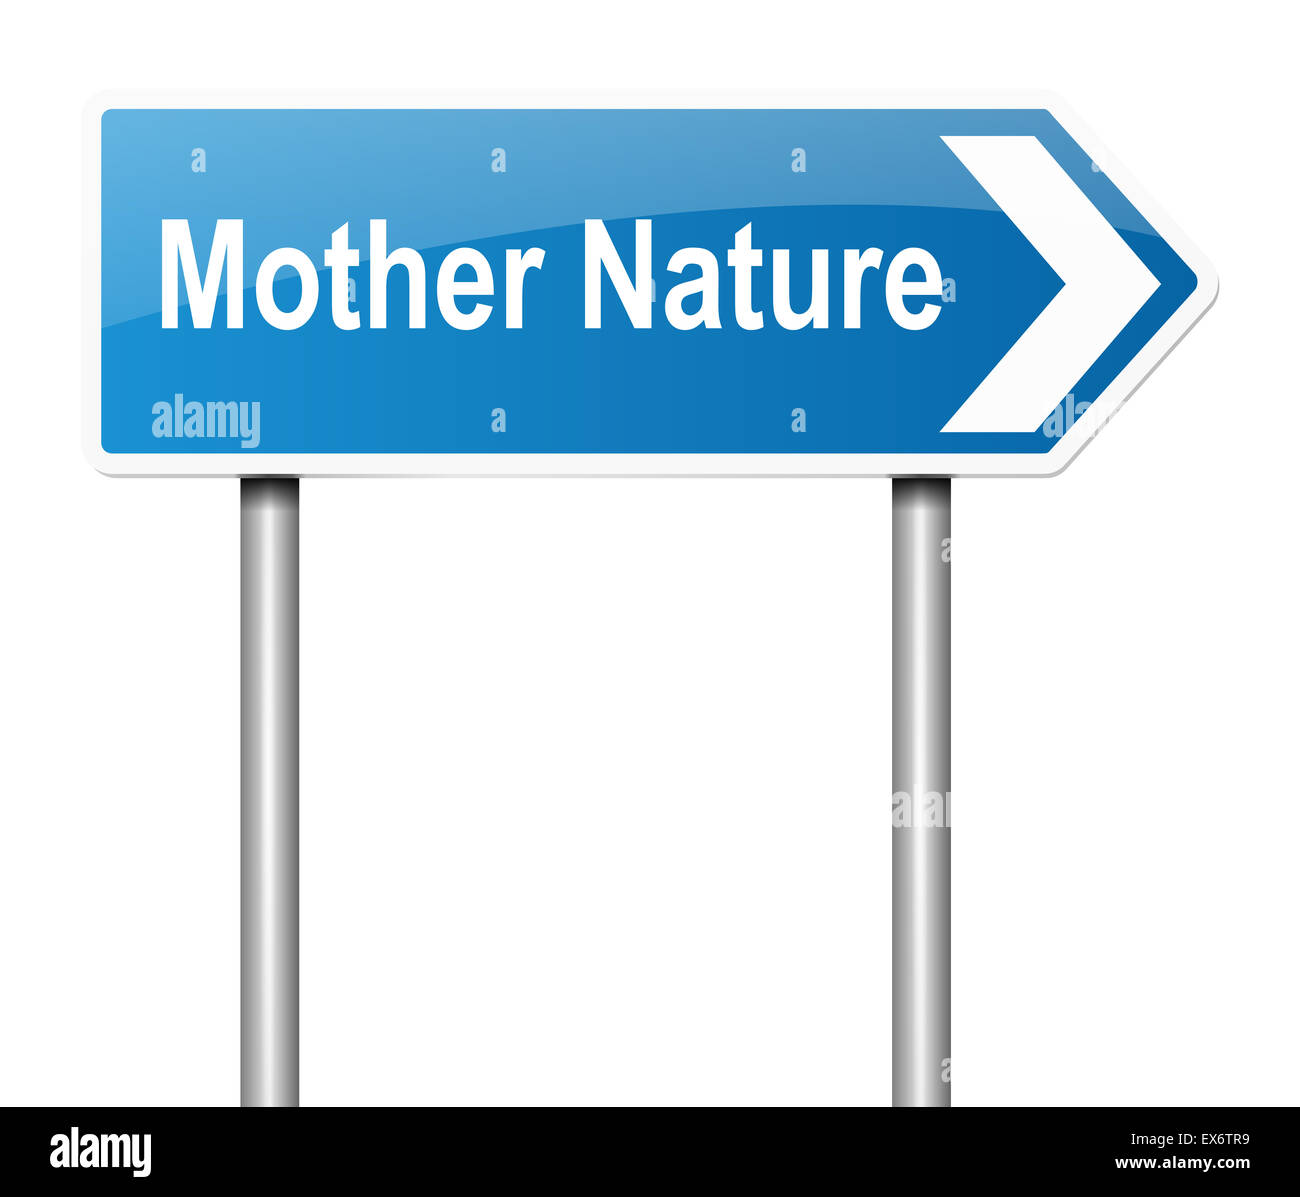 Mother nature concept. - Stock Image